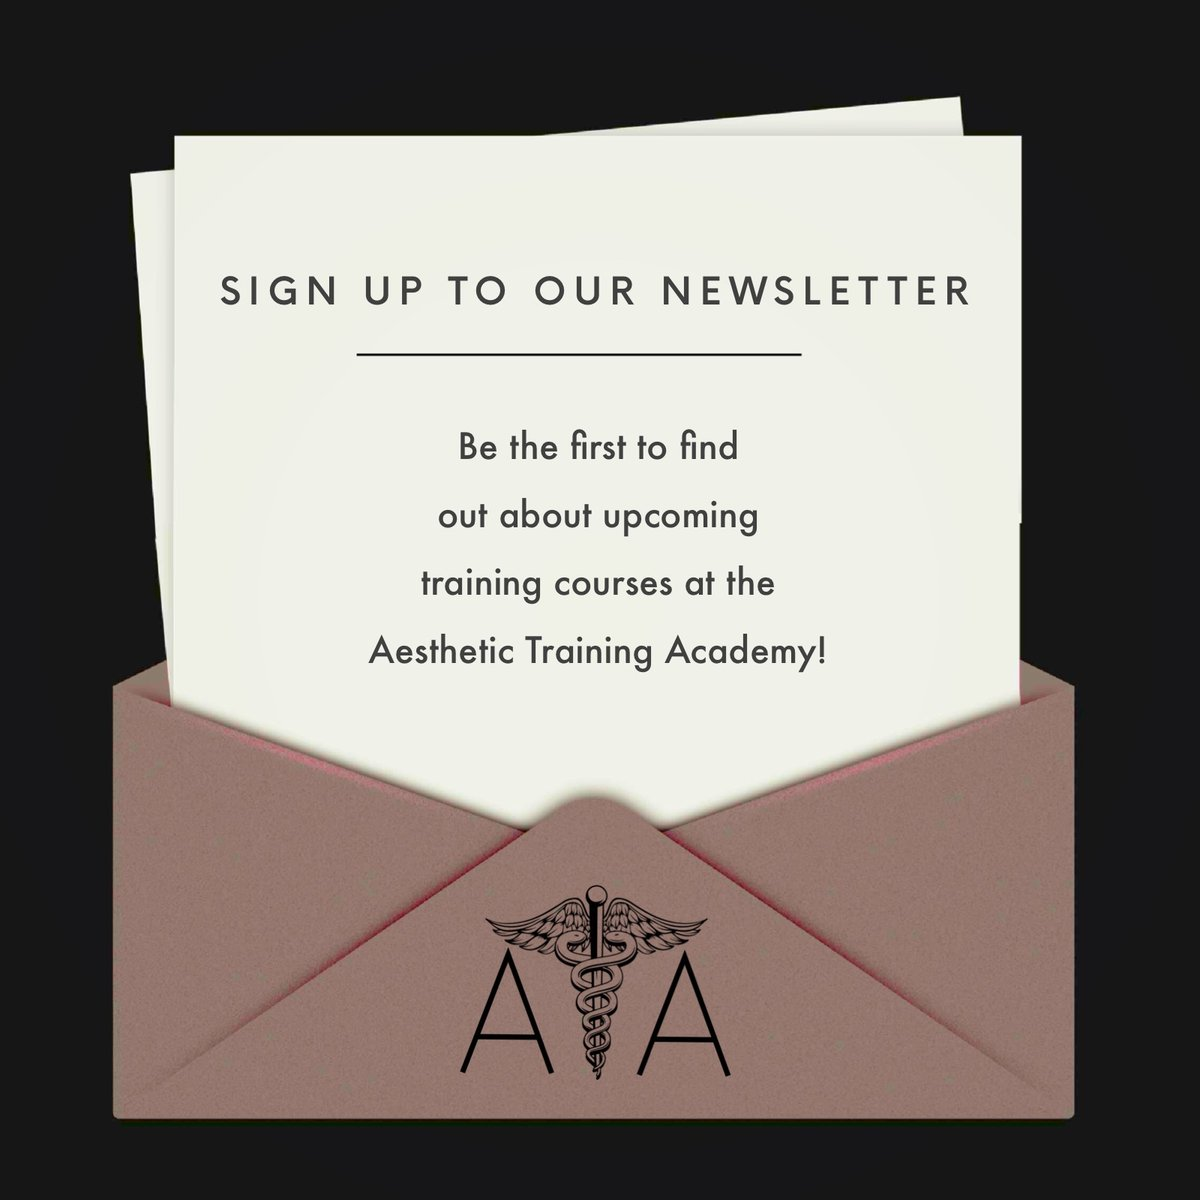 test Twitter Media - Sign up for our newsletter to be the first to find out about upcoming training courses at the Aesthetic Training Academy.  https://t.co/h2Ksekzy7f https://t.co/AHN80OmUop